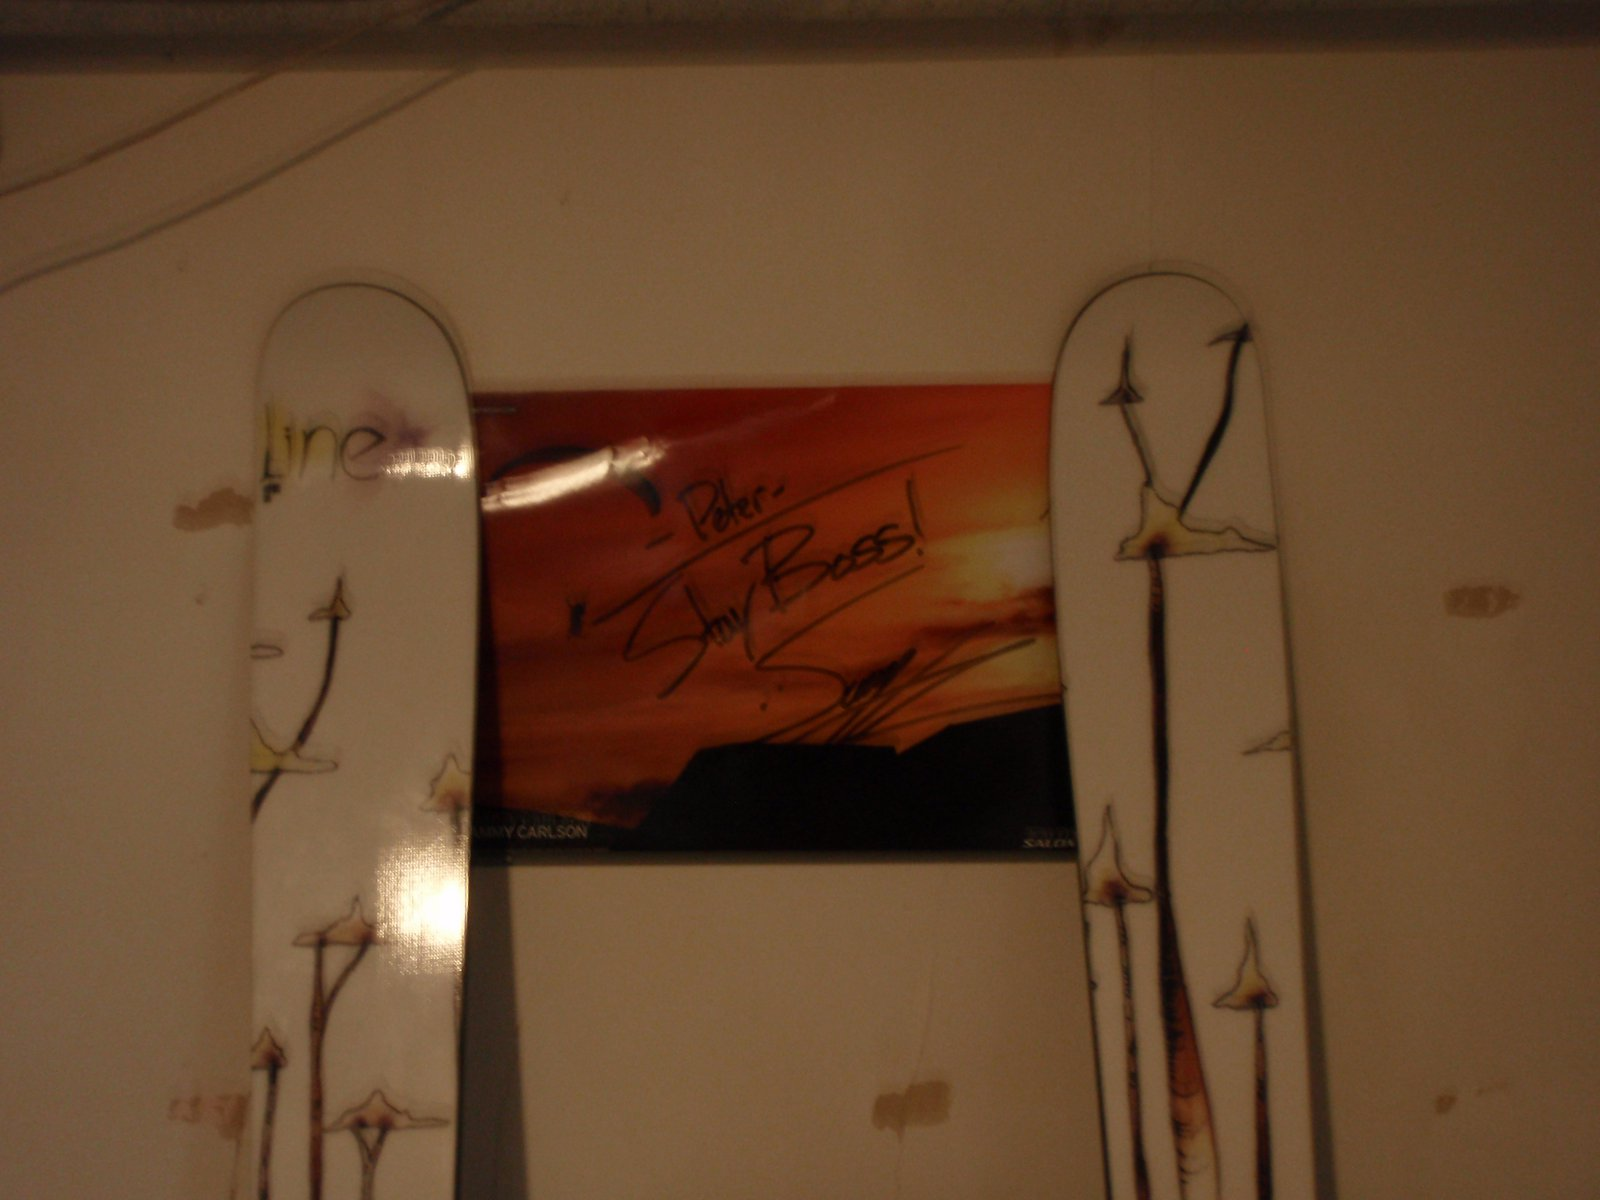 Skis and poster